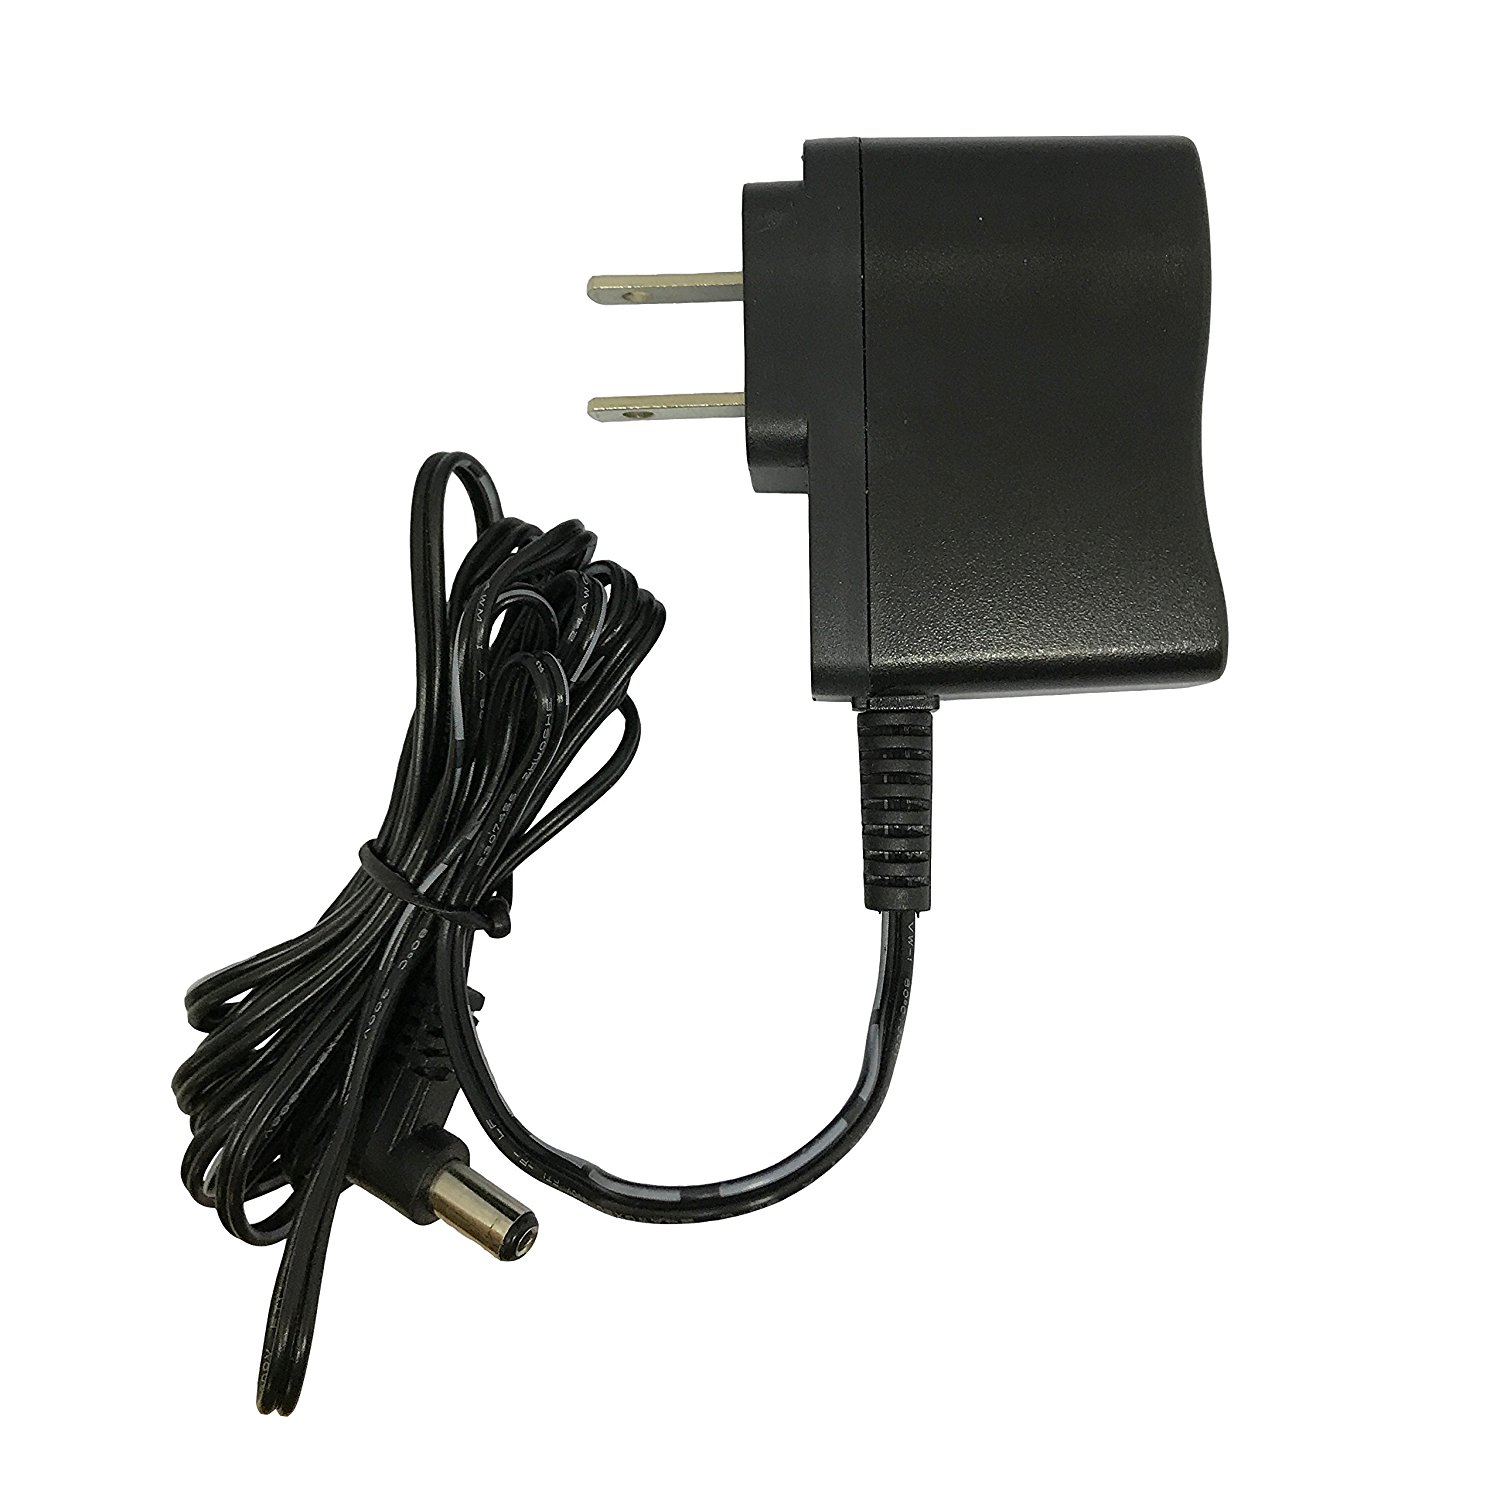 Dymo 420P Label Manager AC Adapter Power Cord Supply Charger Cable Wire 1768815 1758460 1815990